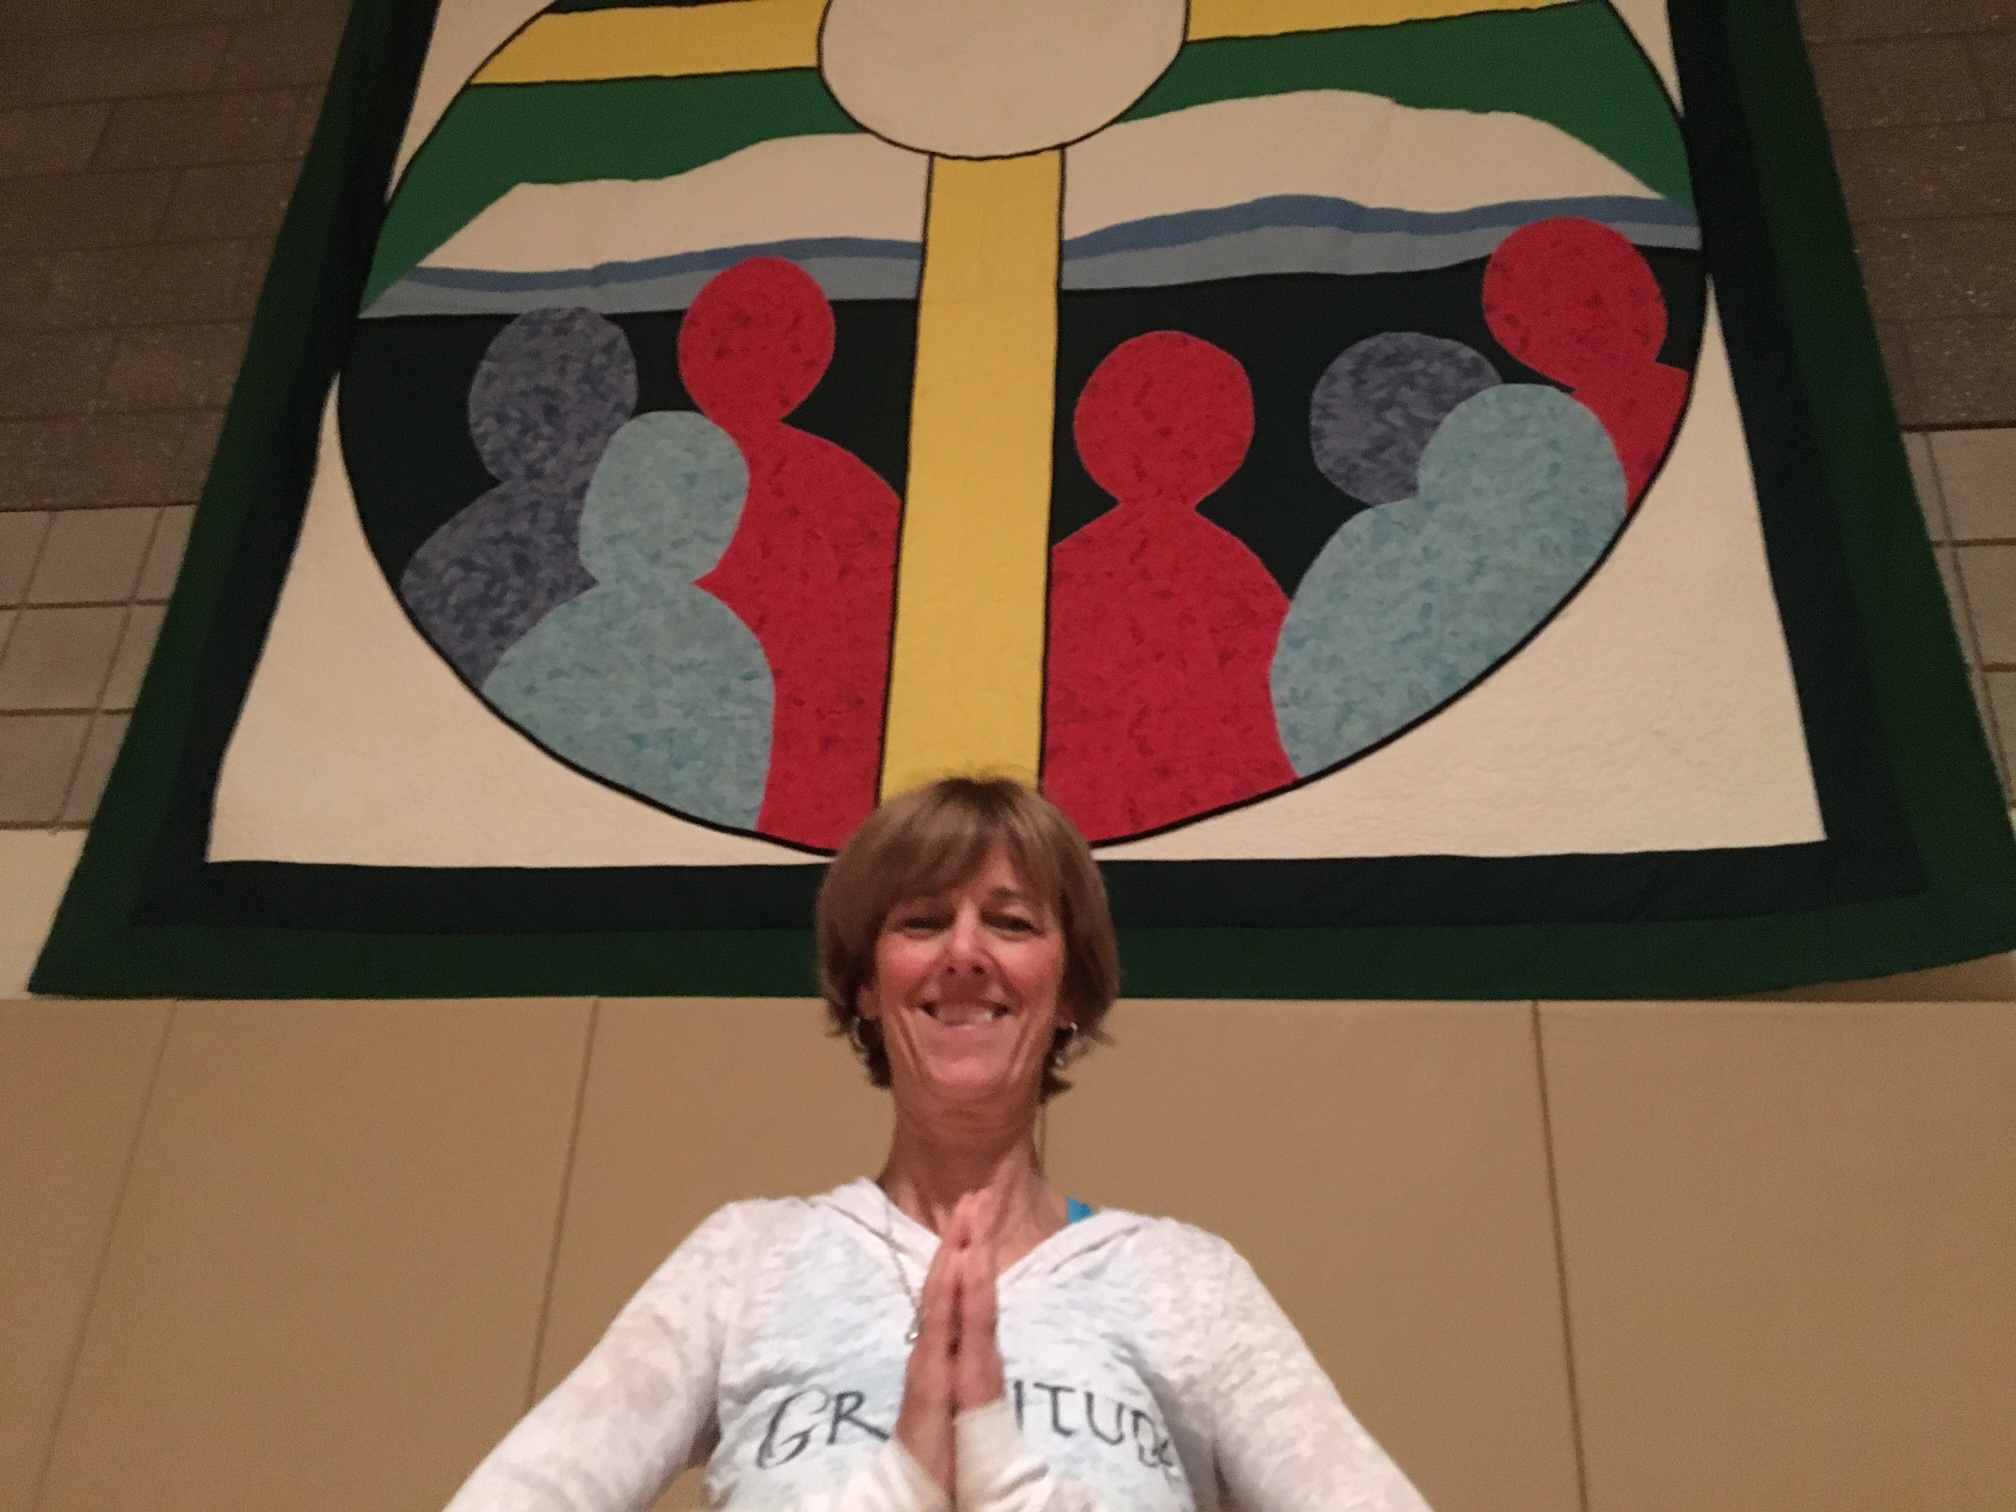 'The reflection and the meditation (in yoga) drew me toward a deeper connection to my faith,' St. Mary's yoga class instructor Jane Schmitt says.